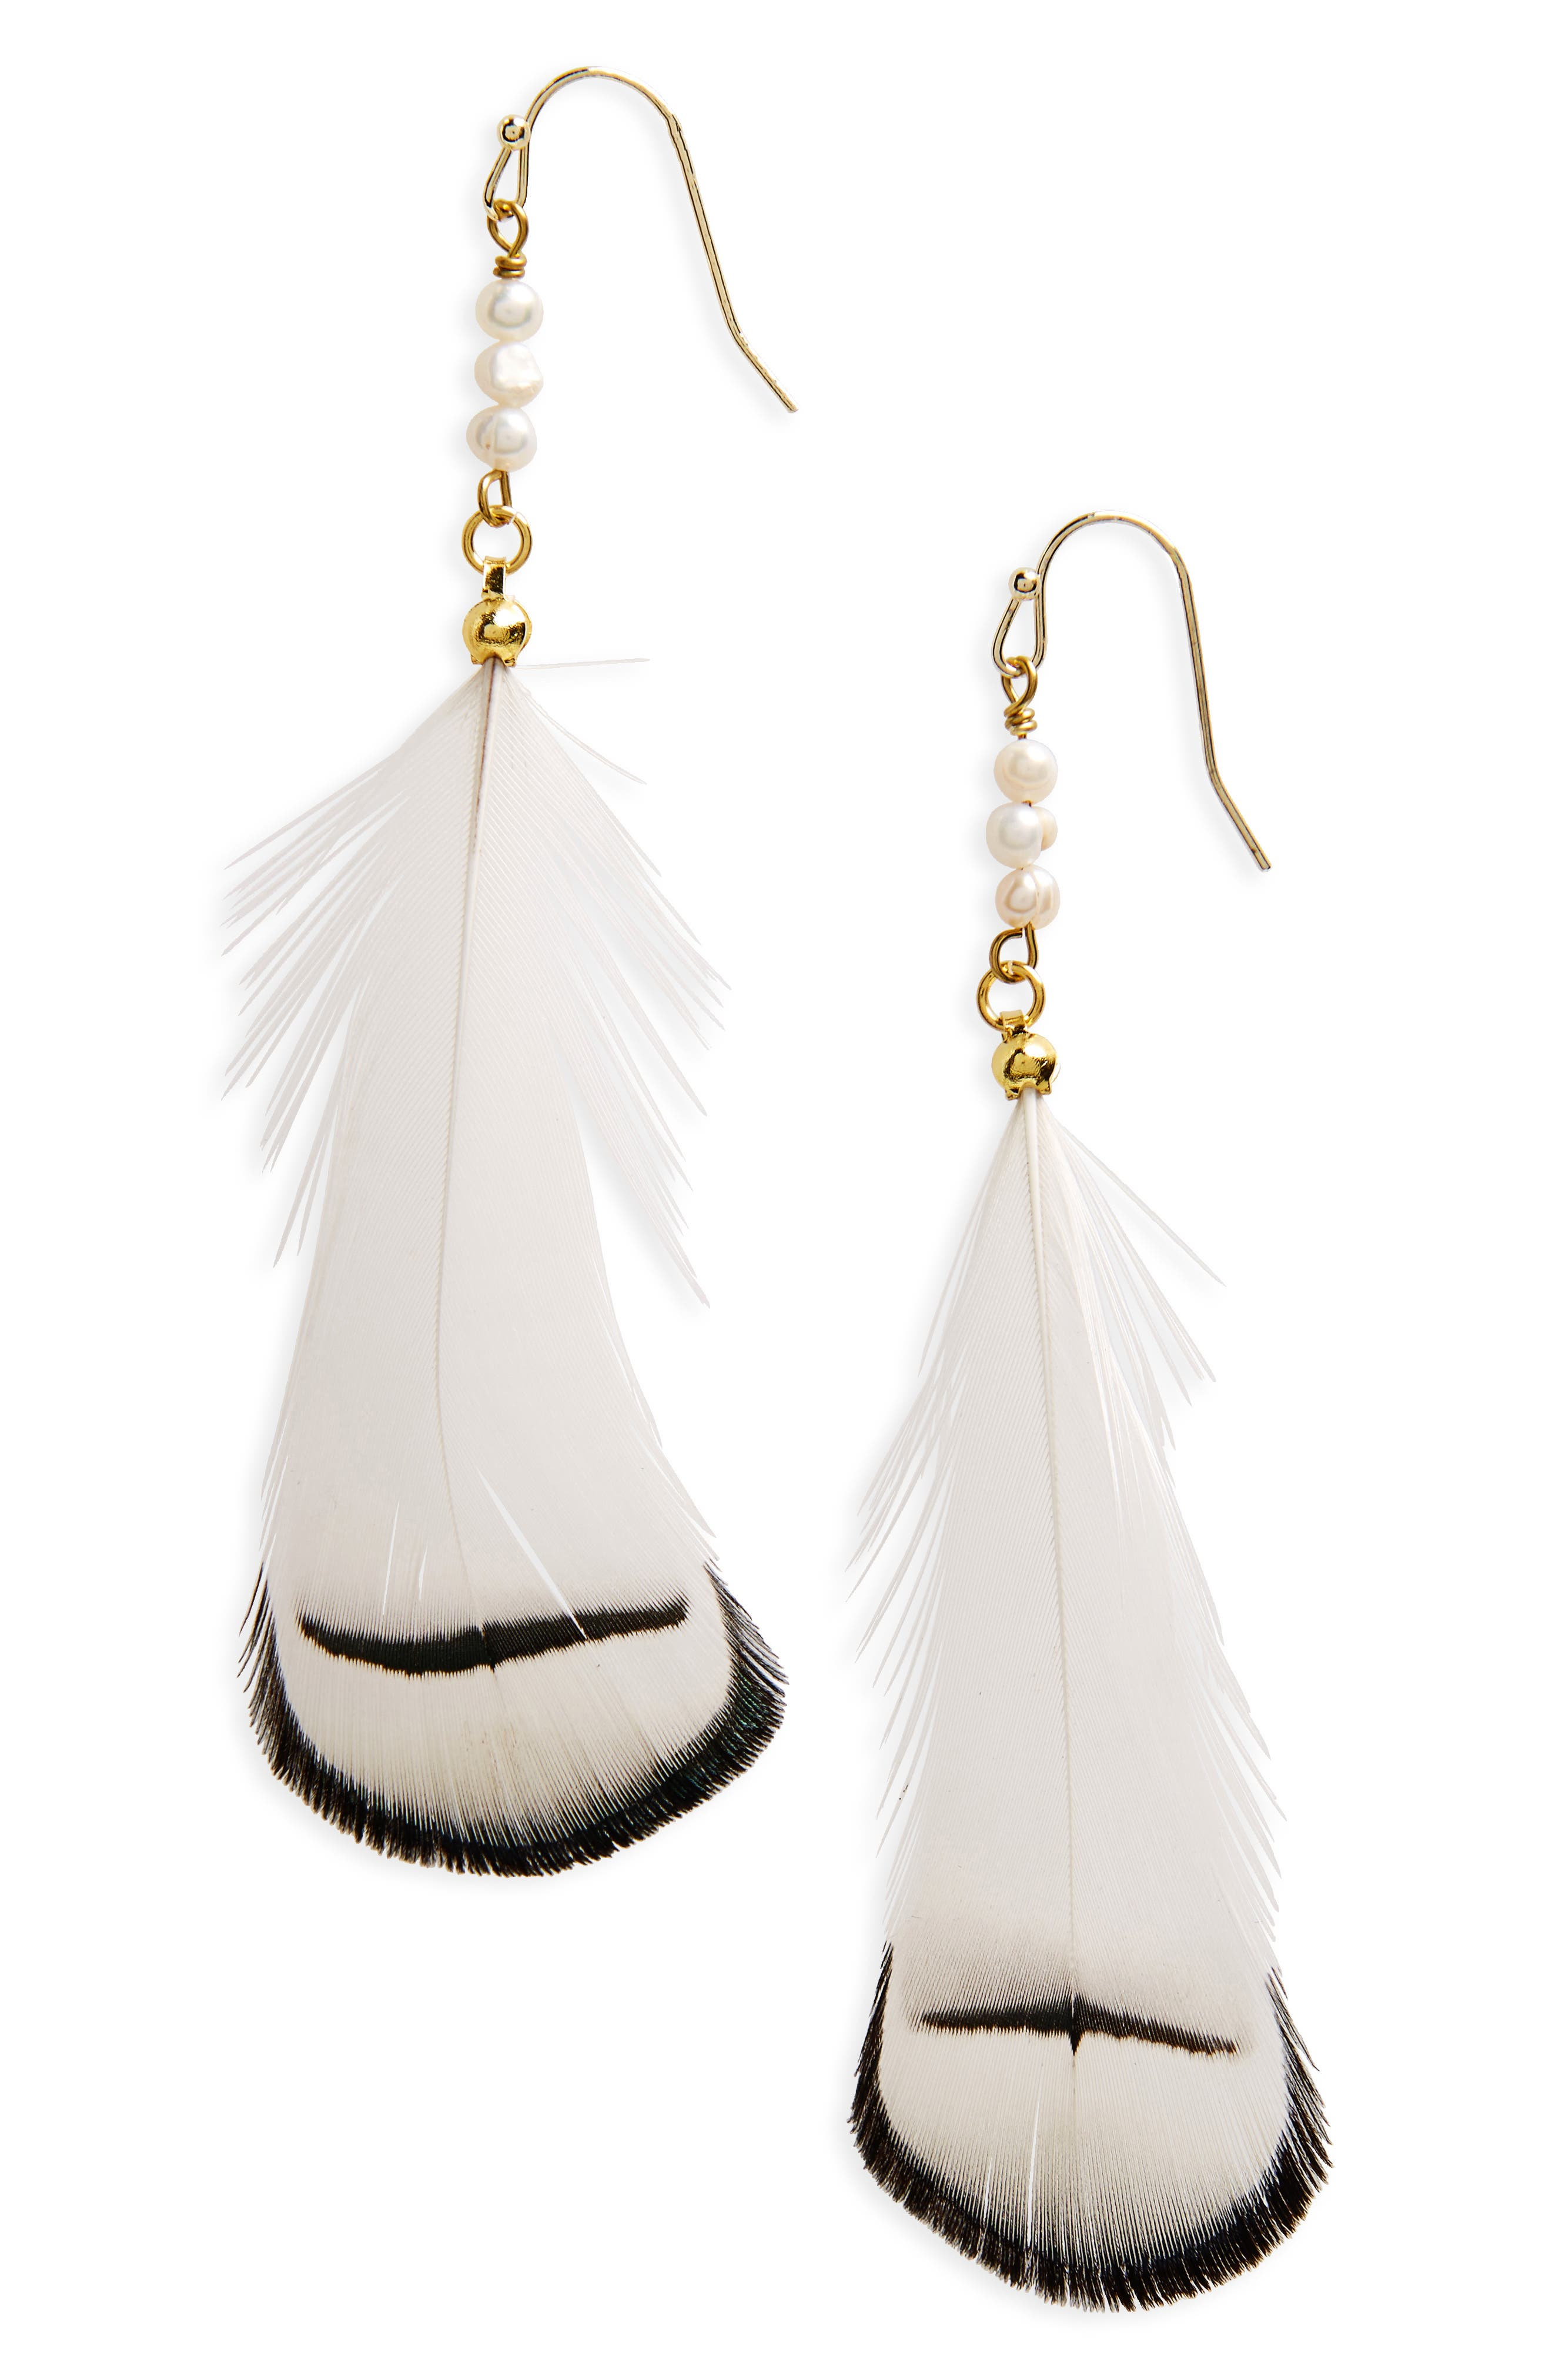 Feather & Pearl Earrings,                             Main thumbnail 1, color,                             100